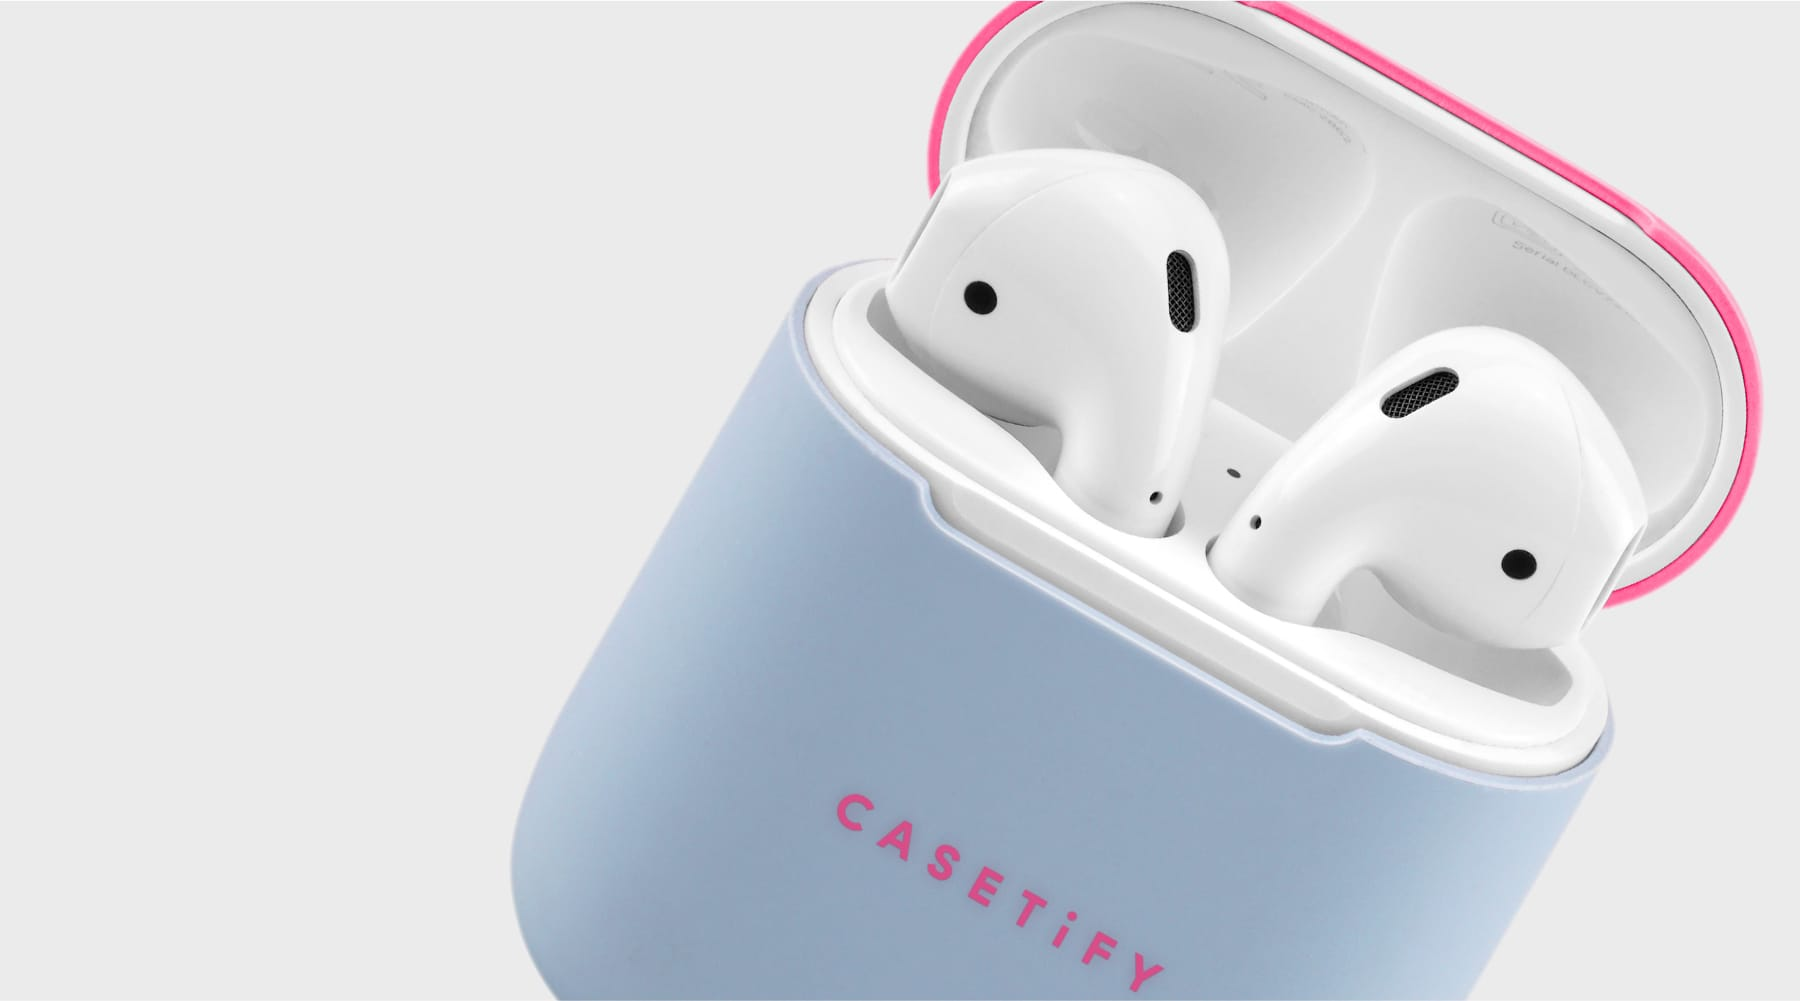 Neon Airpods Case Skin 2 Sets Vip Purple Pink